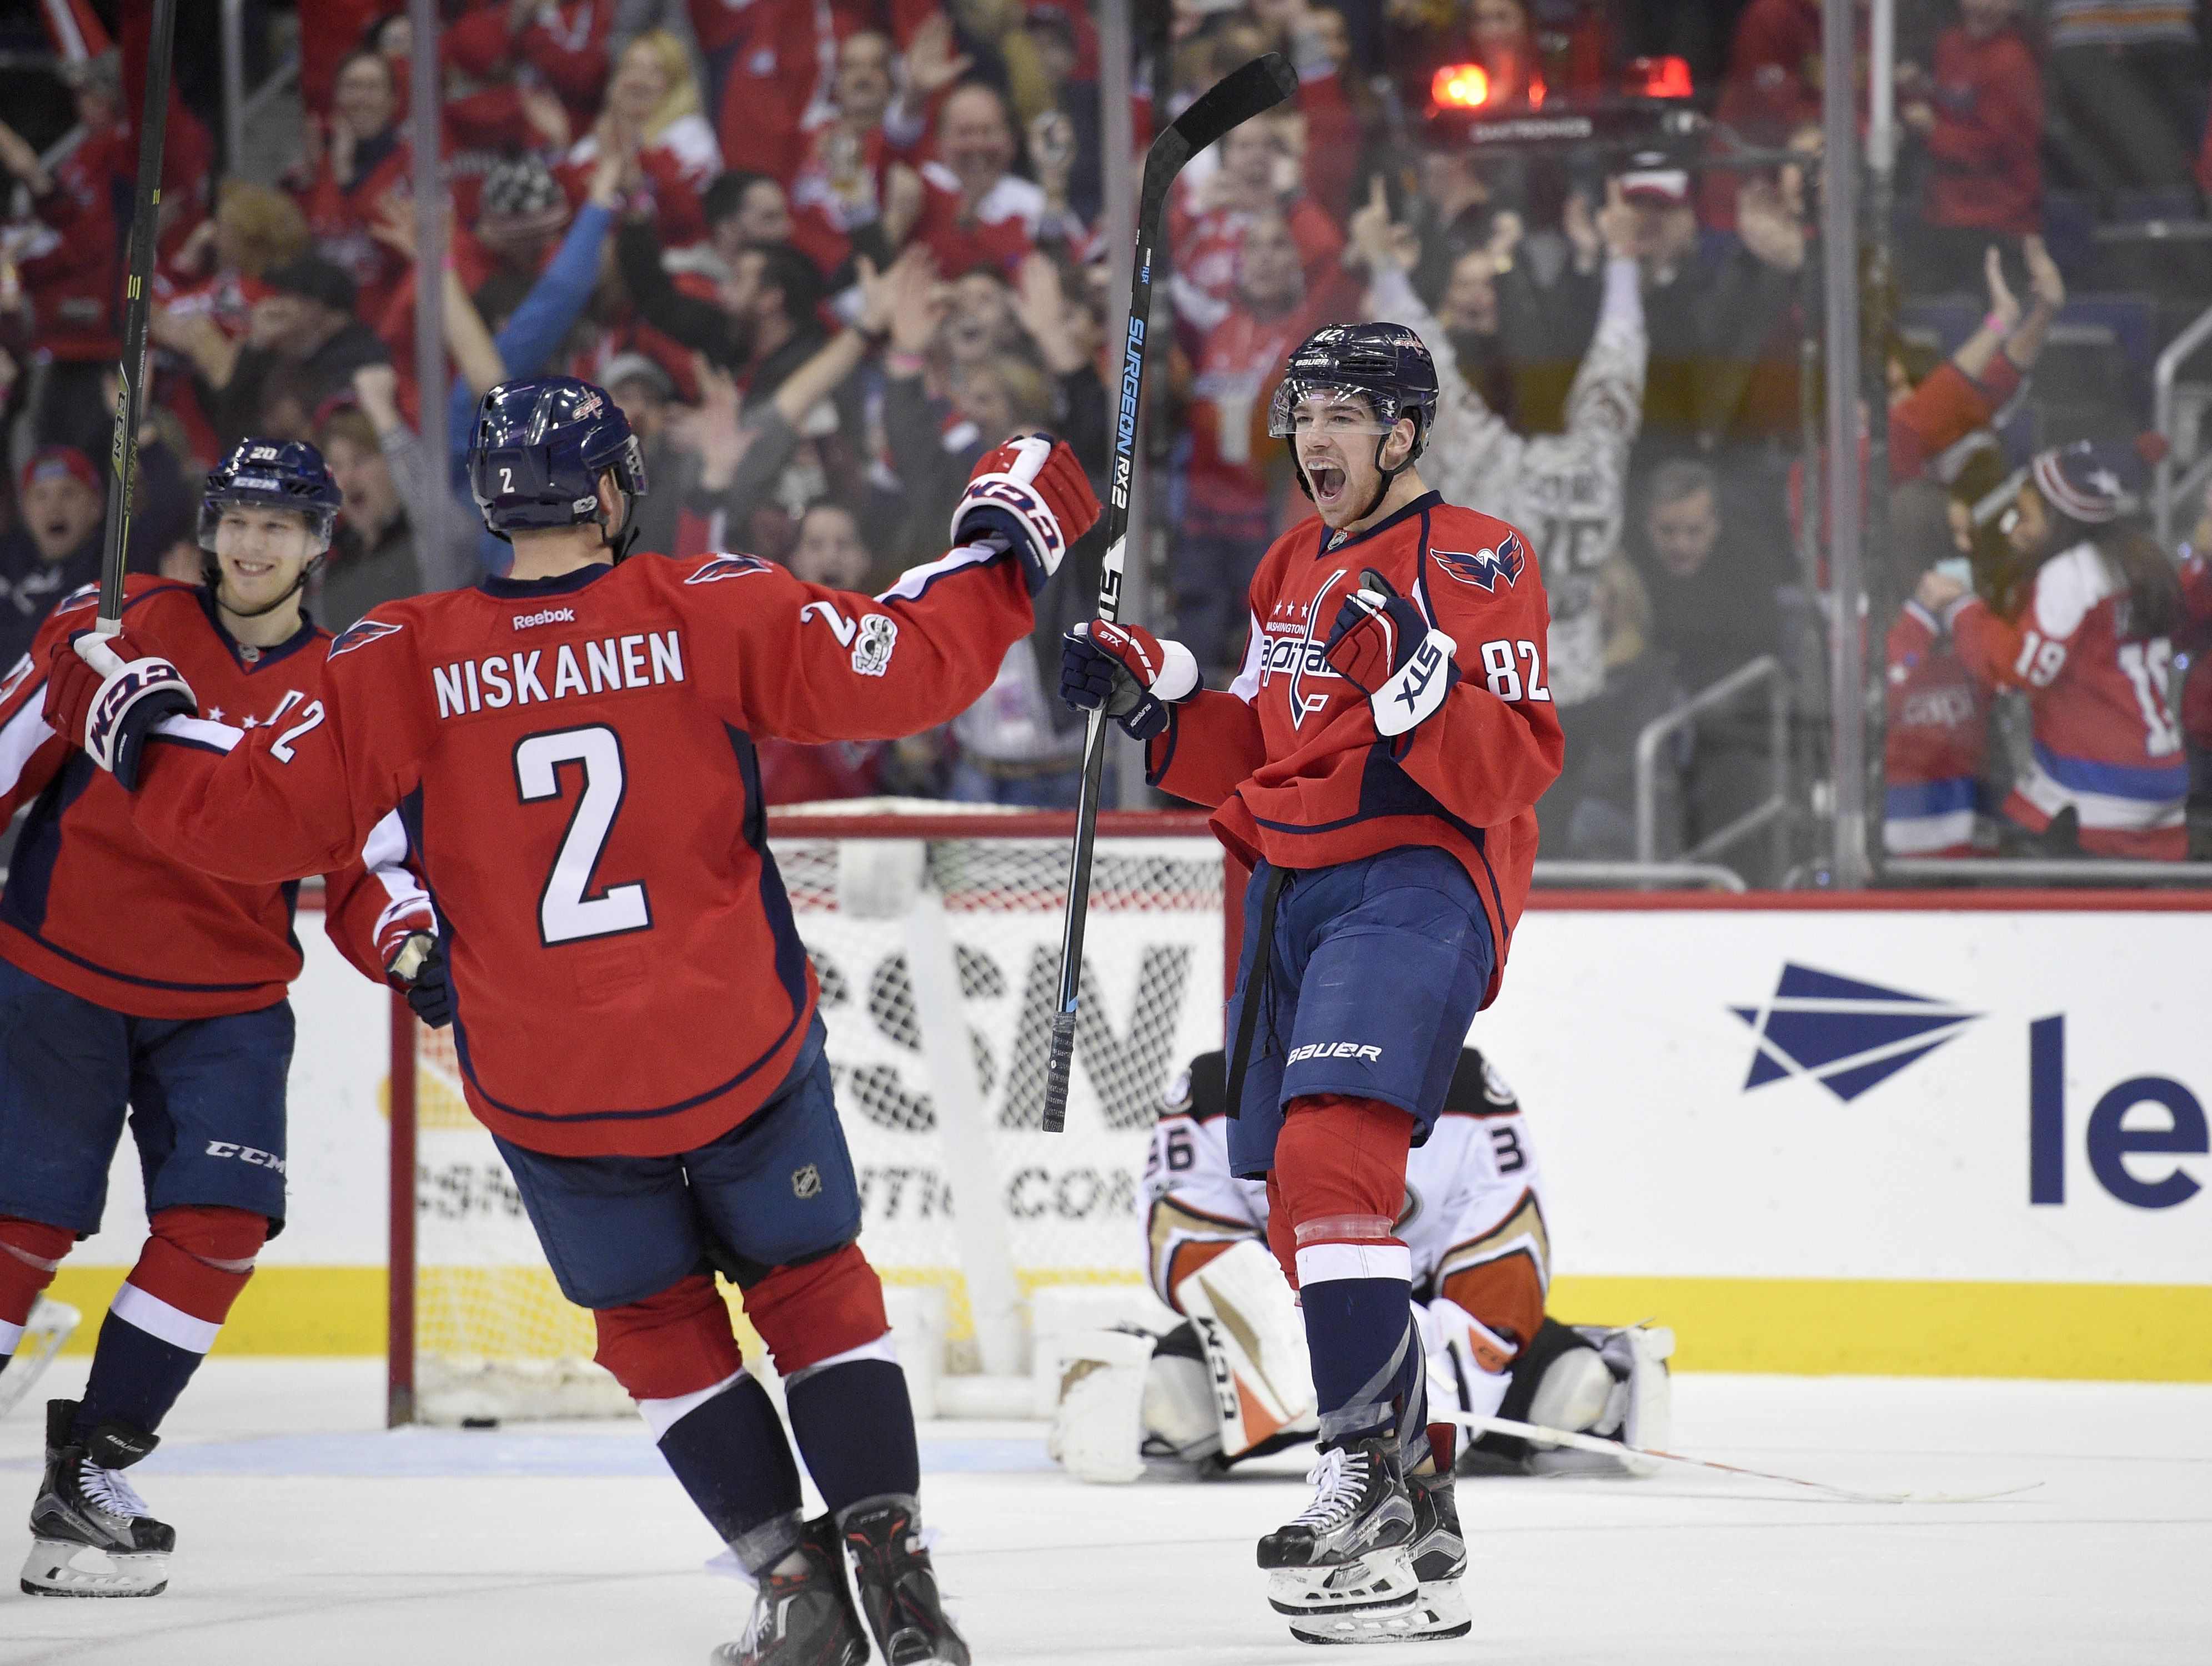 Zach Sanford's first career NHL goal lifts Capitals to a win over the Ducks